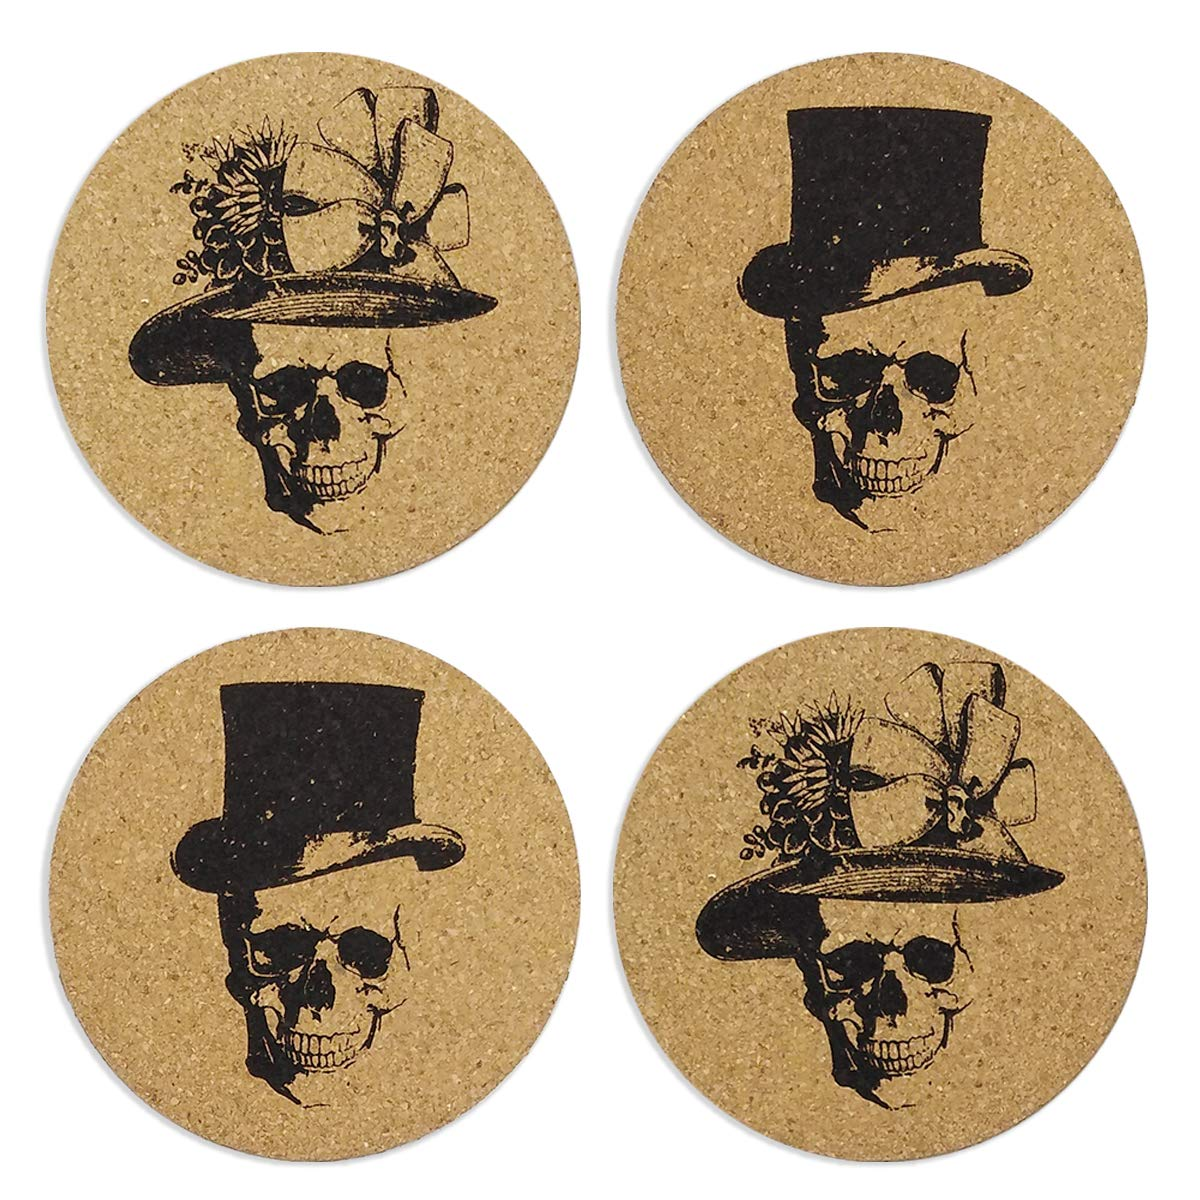 Skull Art Cork Coasters for Drinks, Funny skull Halloween gifts Decor Drink Coasters, Living Room, Home Decor, Protects Furniture from Damage.–Set of 4